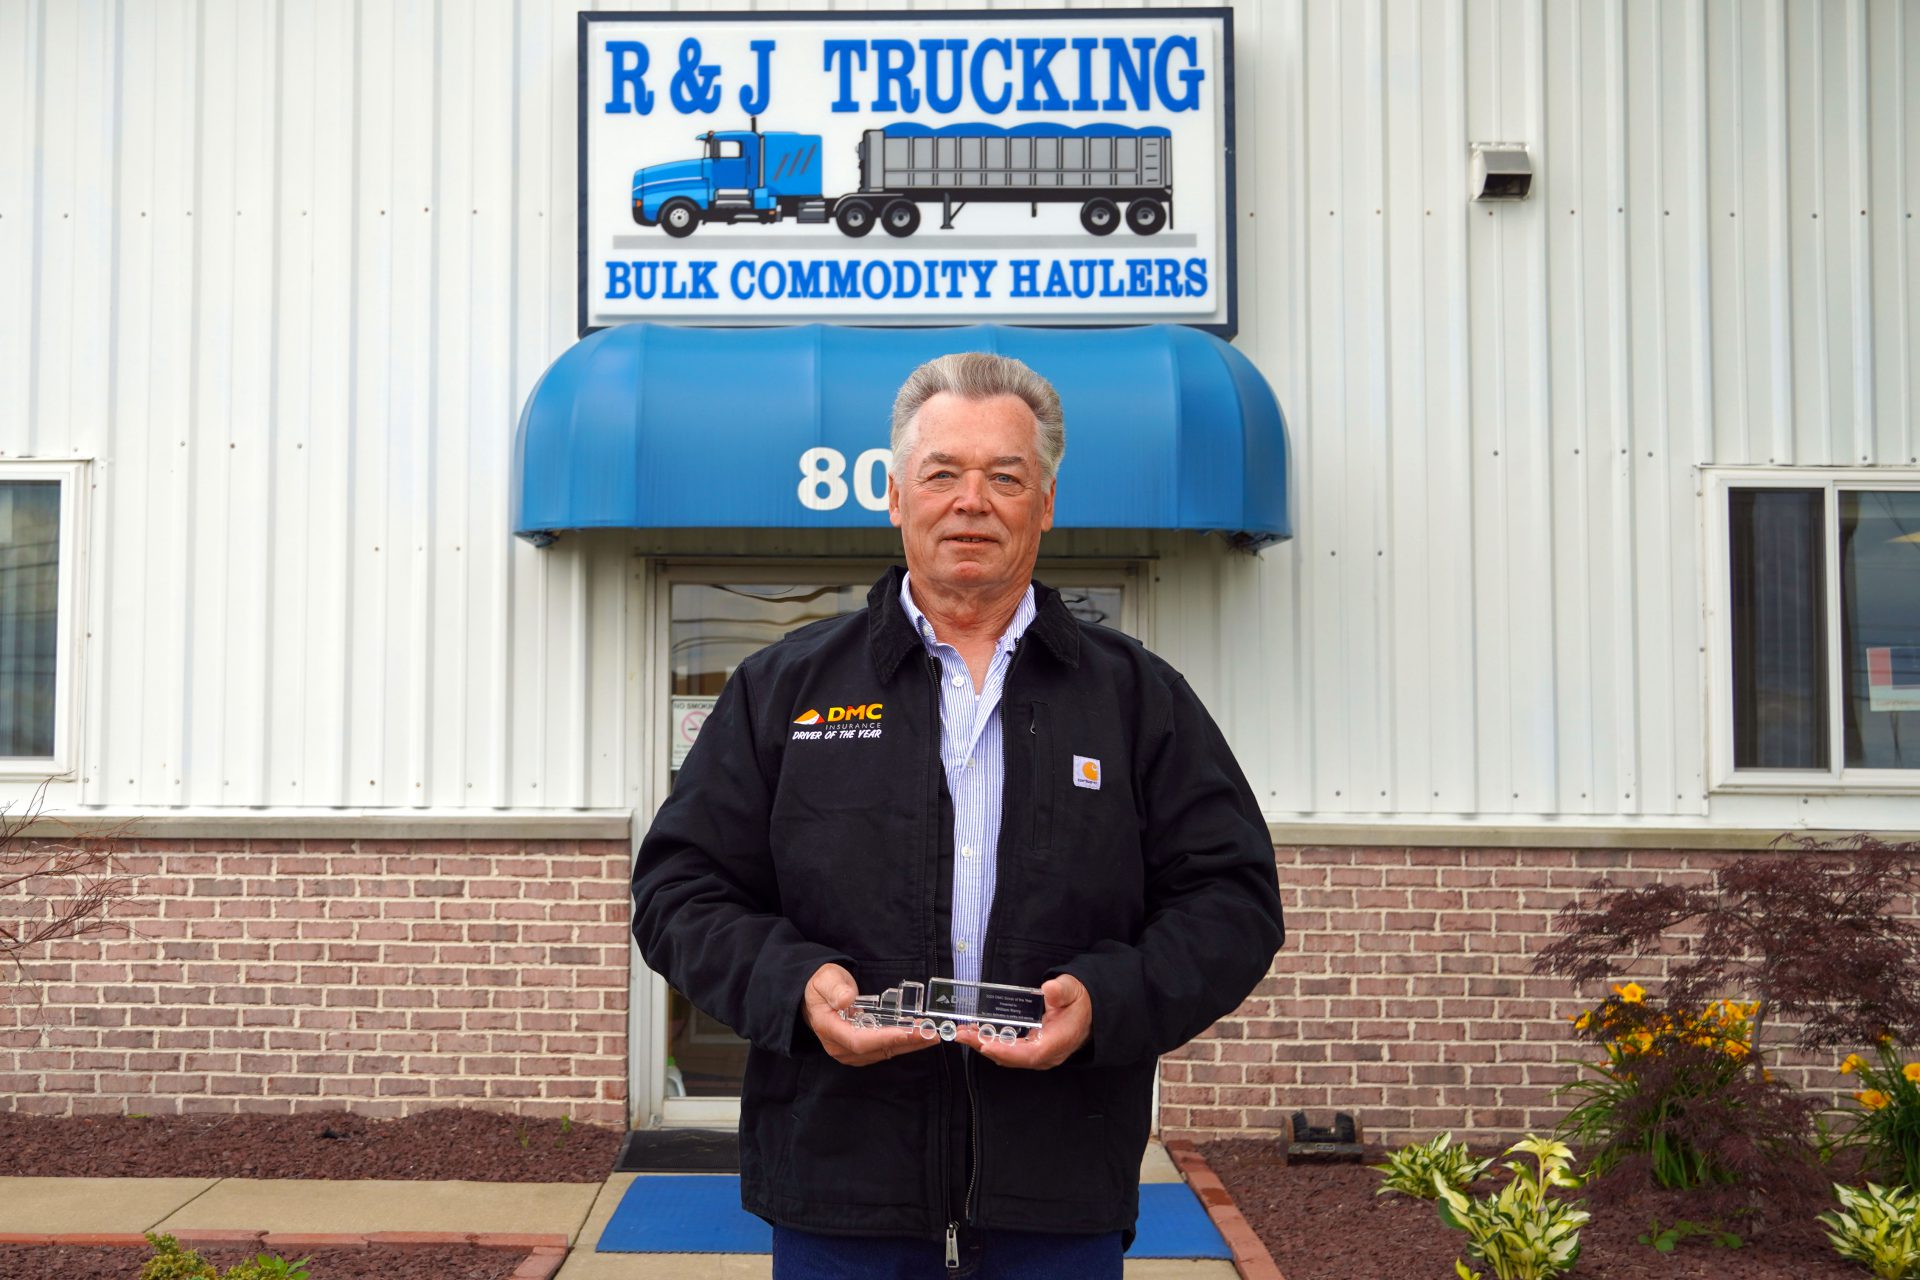 Bill Kerry DMC Driver of the Year